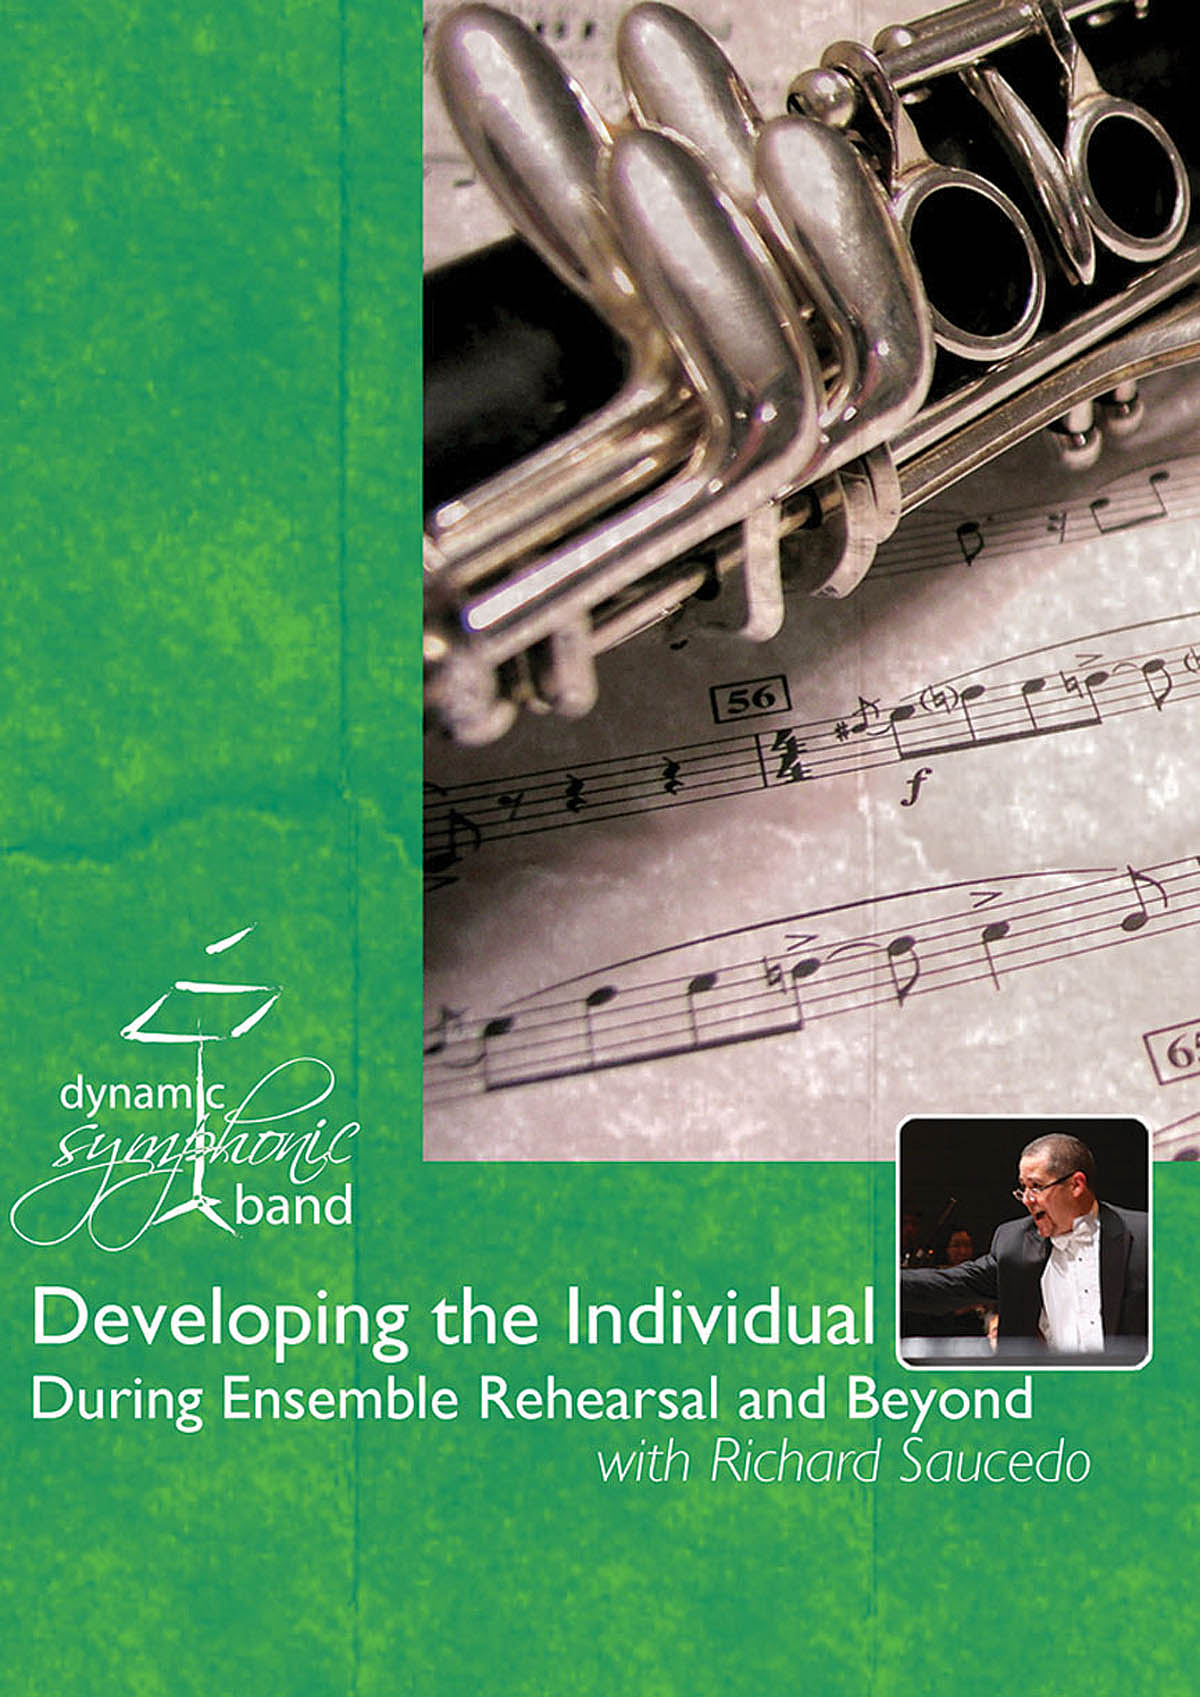 Developing the Individual: Concert Band: DVD